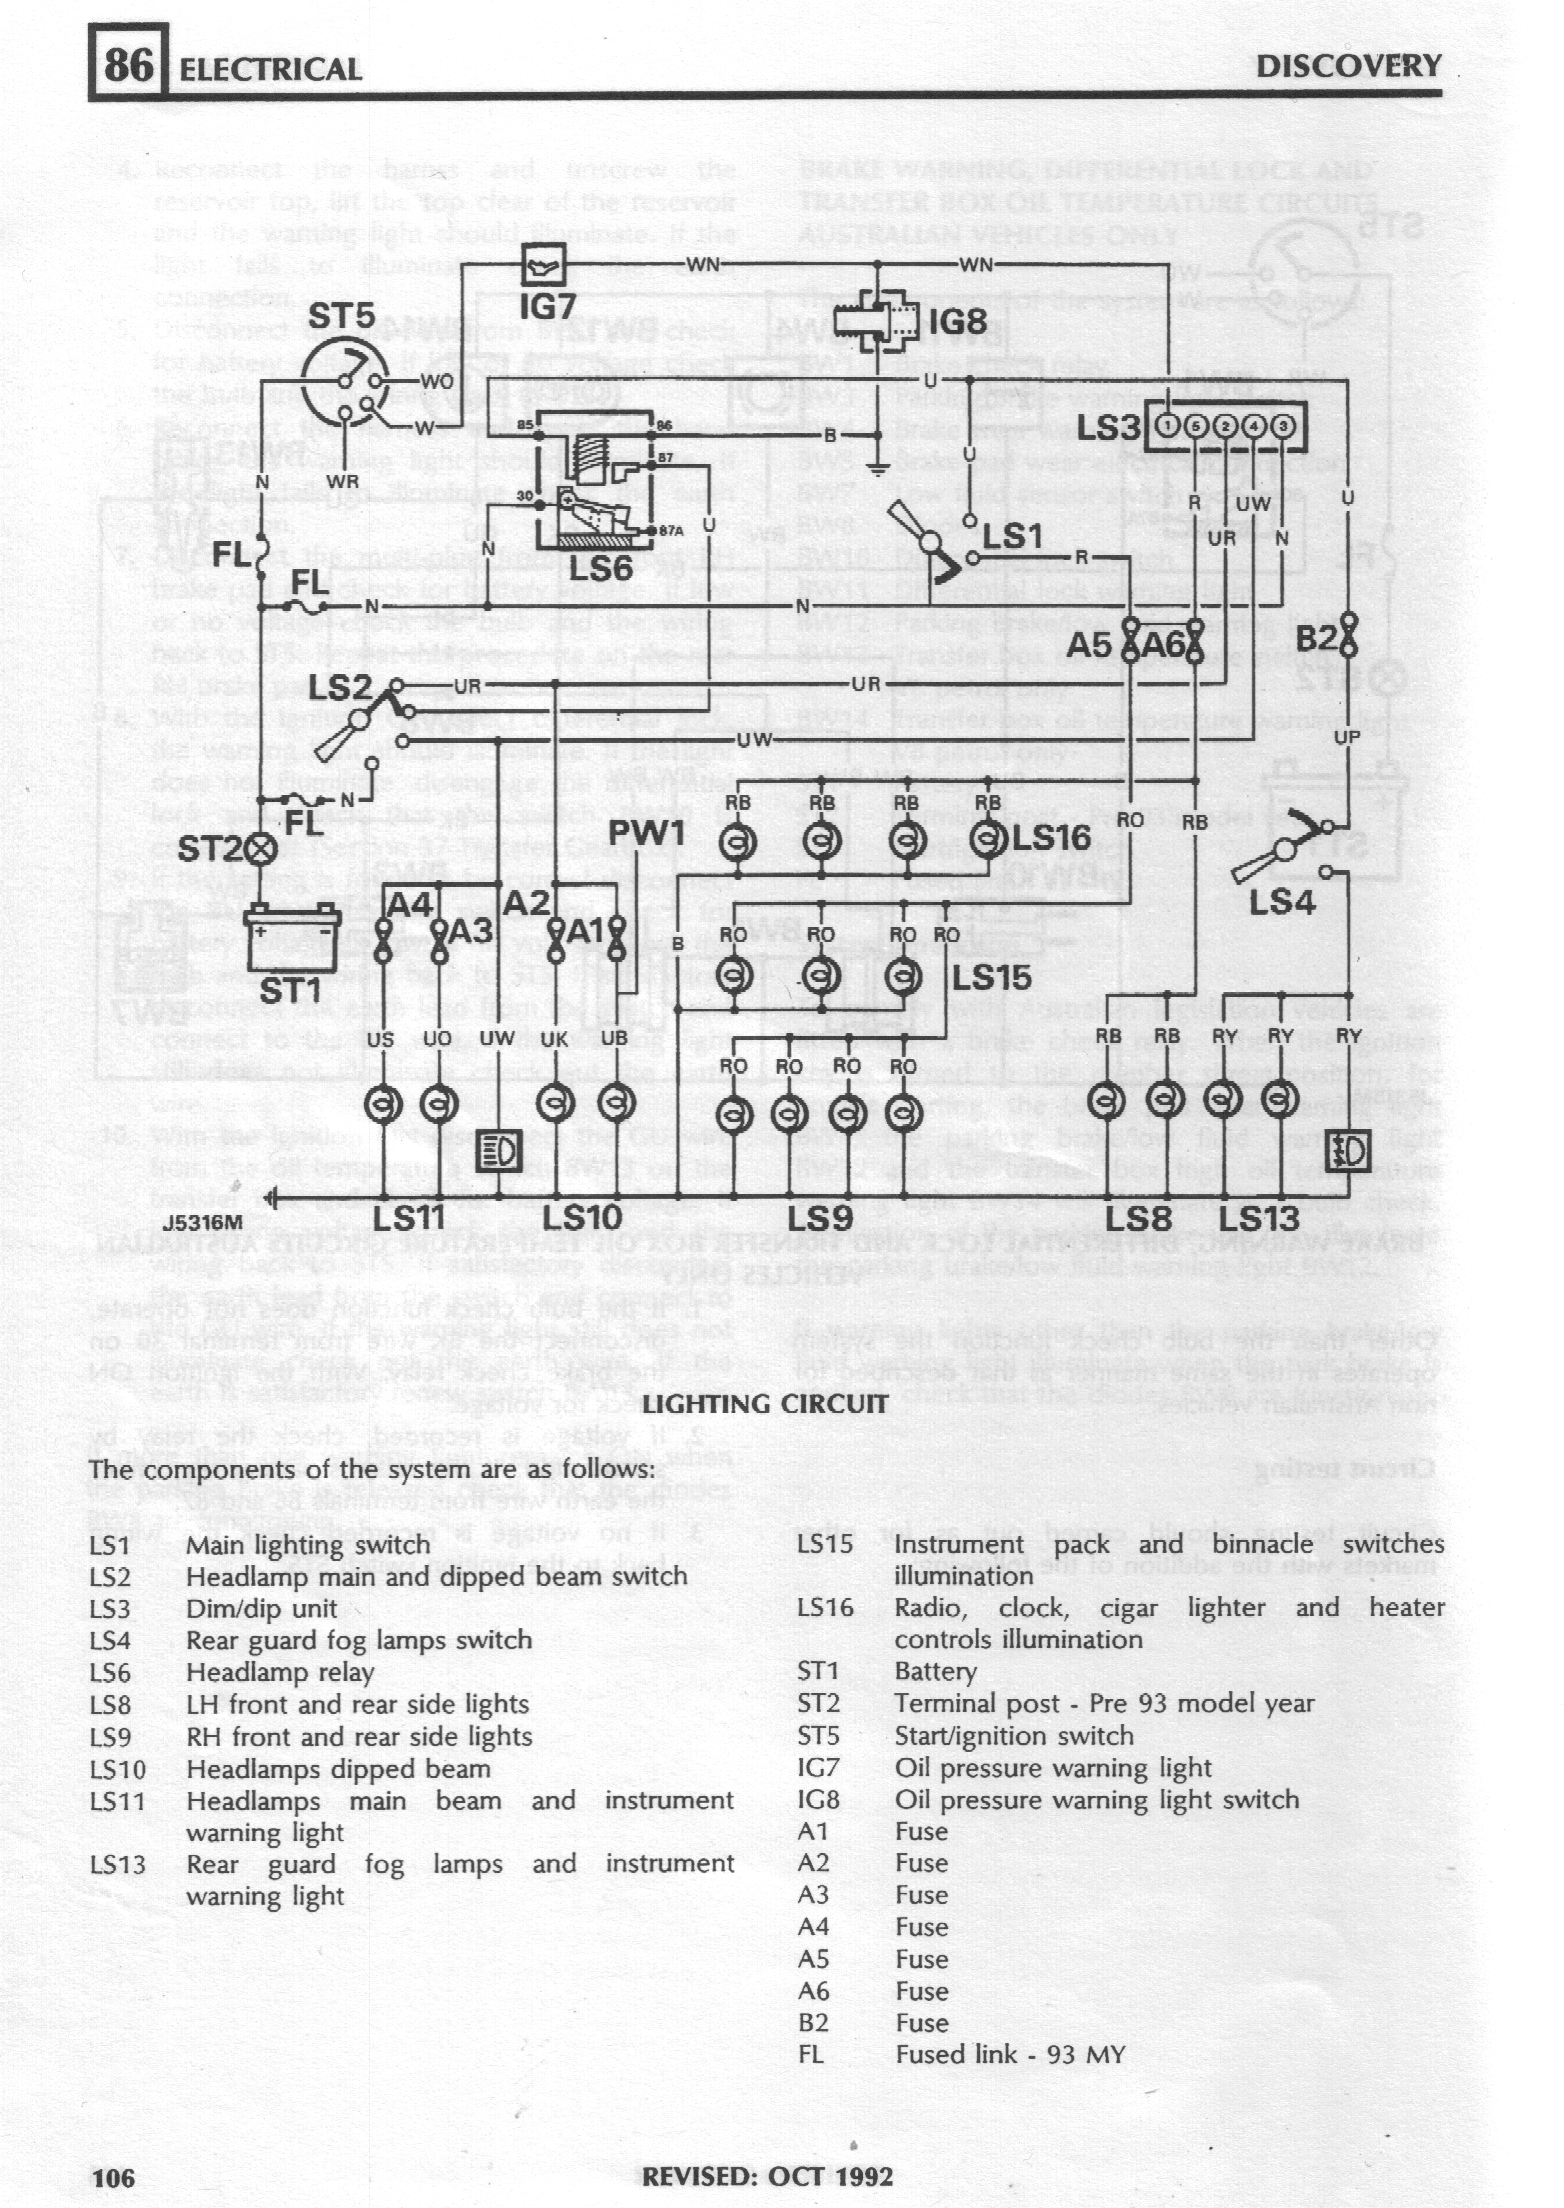 Land Rover Discovery 200tdi Wiring Diagram Detailed Schematics Defender Famous Class A Festooning Electrical Ideas 1984 El Camino